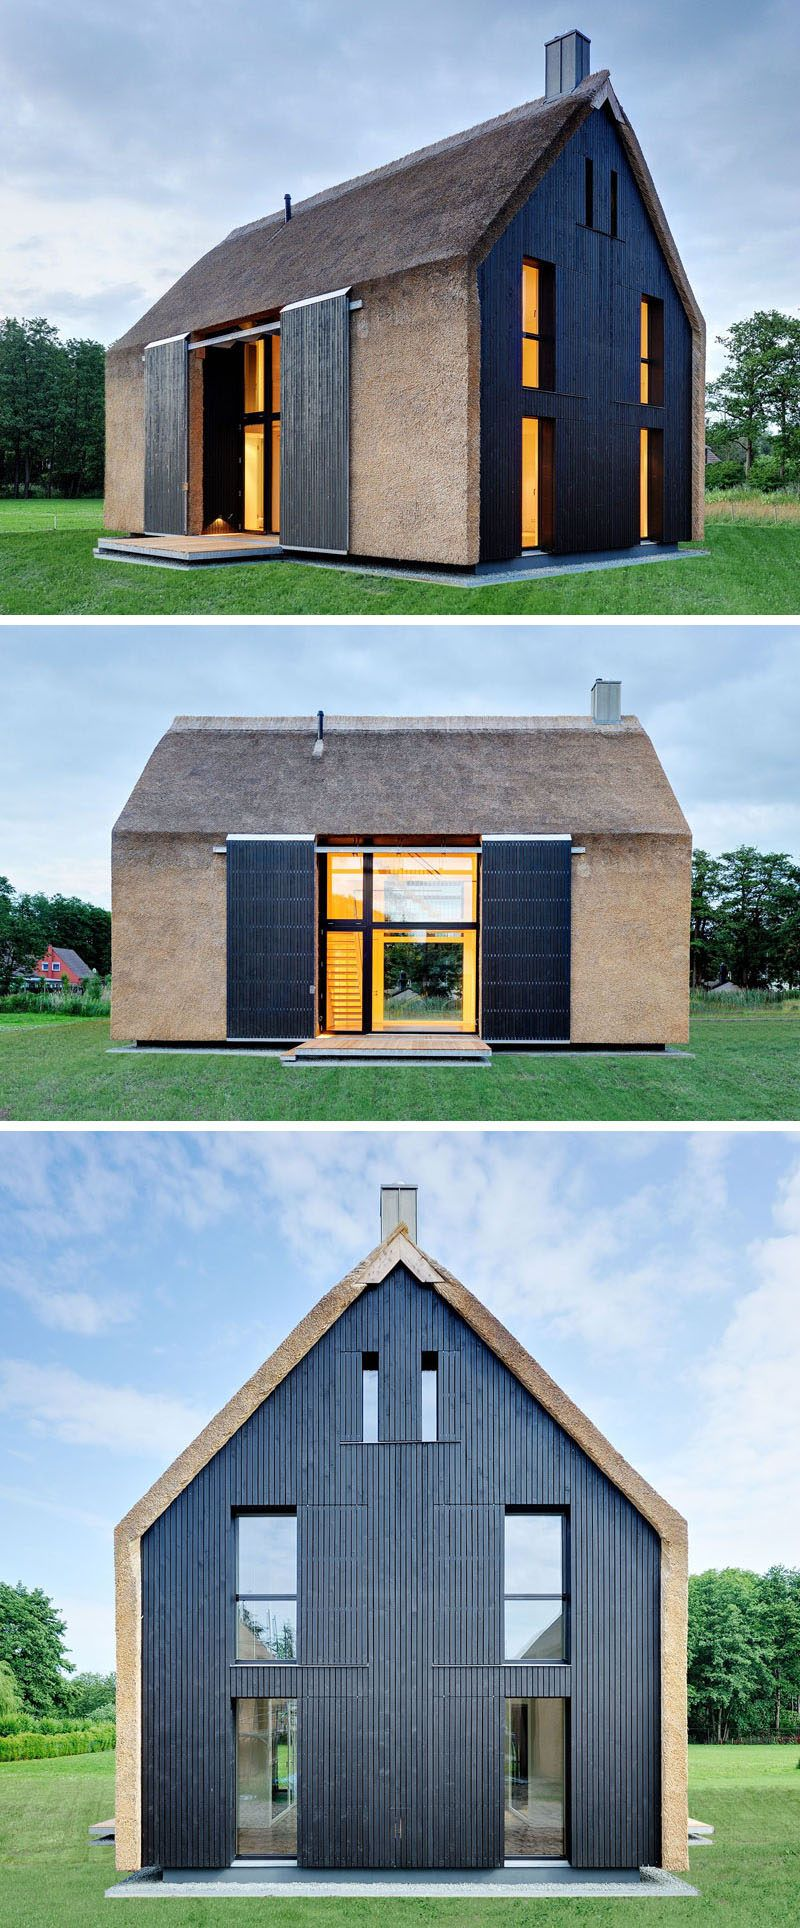 12 Examples Of Modern Houses And Buildings That Have A Thatched Roof #textures